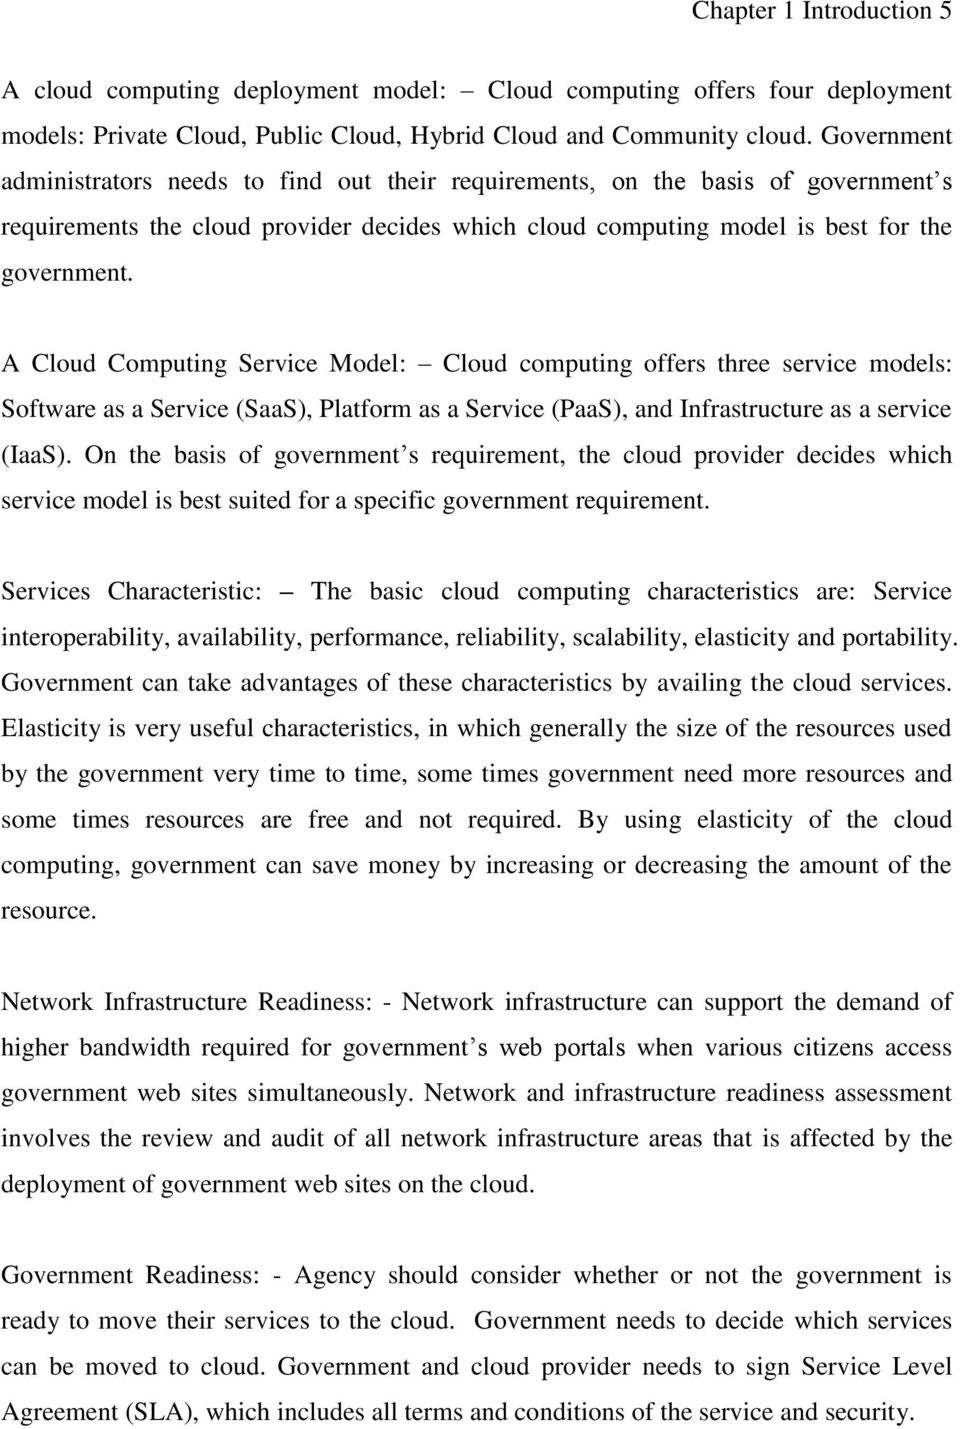 A Cloud Computing Service Model: Cloud computing offers three service models: Software as a Service (SaaS), Platform as a Service (PaaS), and Infrastructure as a service (IaaS).